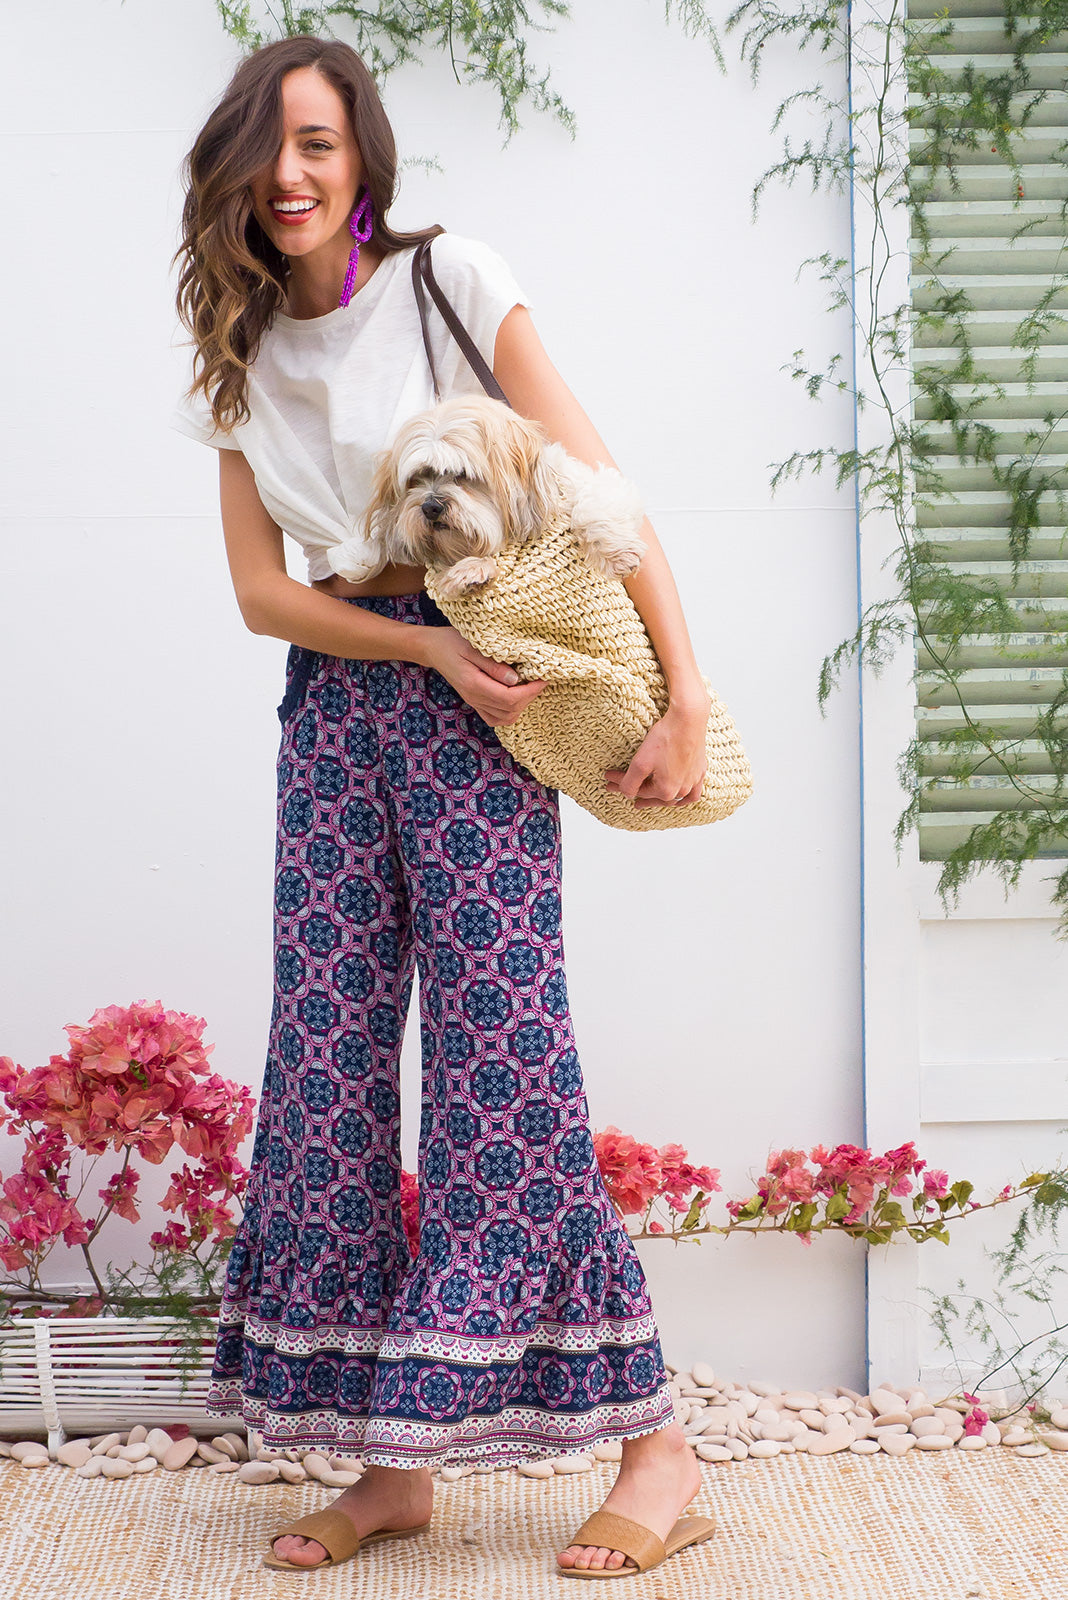 Wandering Pants Adventure Blue feature a slim leg with a wide frill around the hem for a retro vintage style, boho inspired border print design is printed onto woven rayon